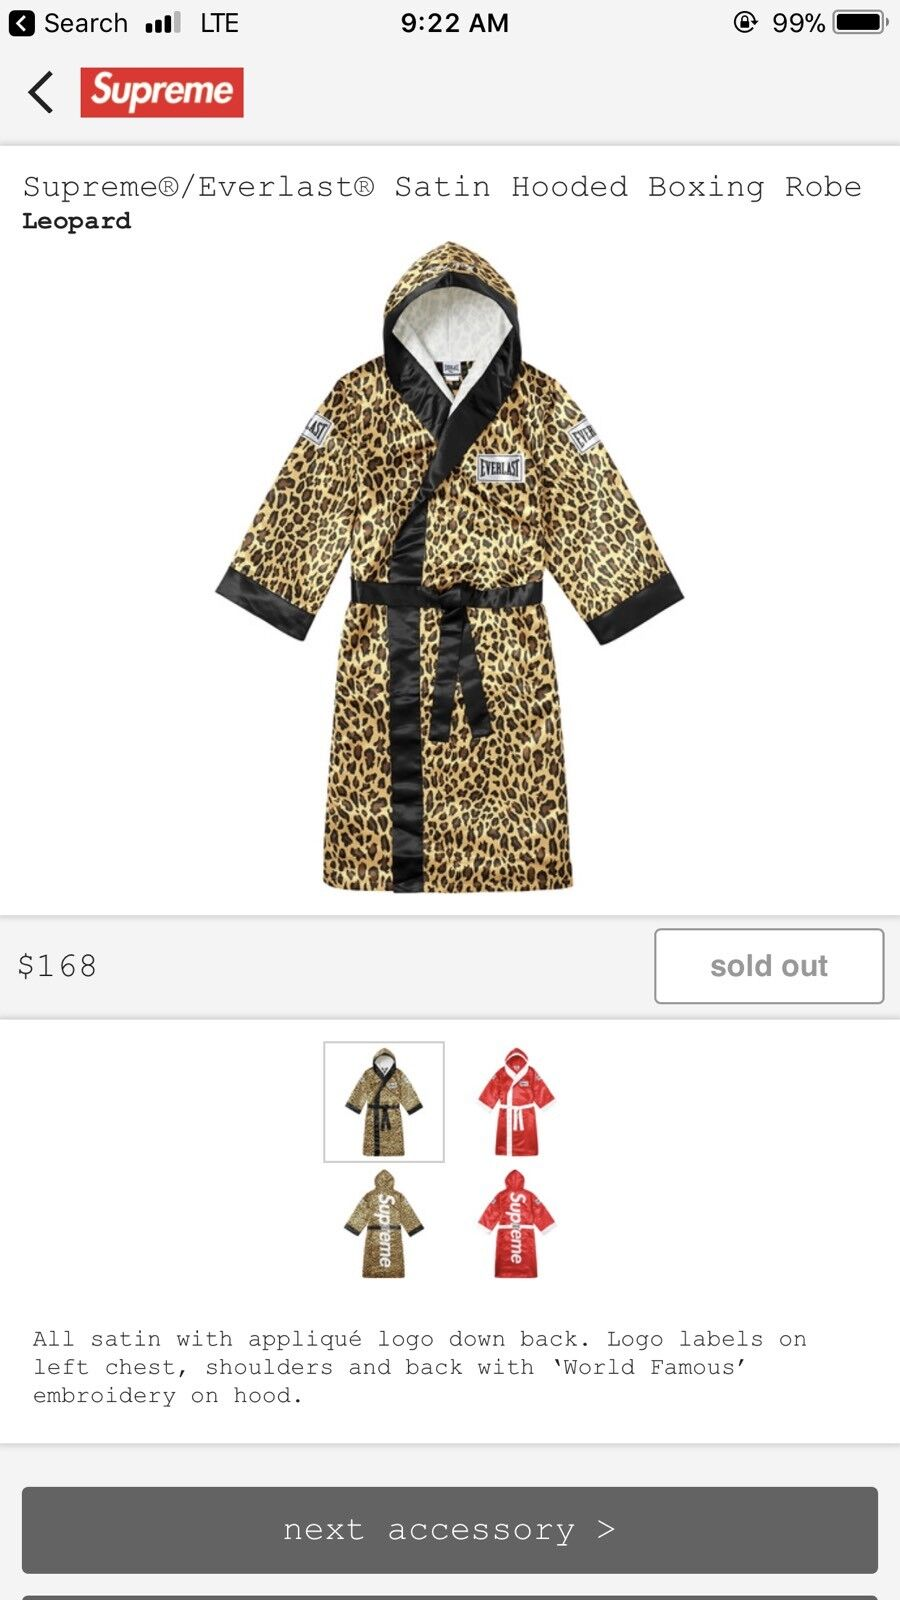 Supreme Everlast Satin Hooded Boxing Robe Leopard Cheetah SMALL Medium CONFIRMED